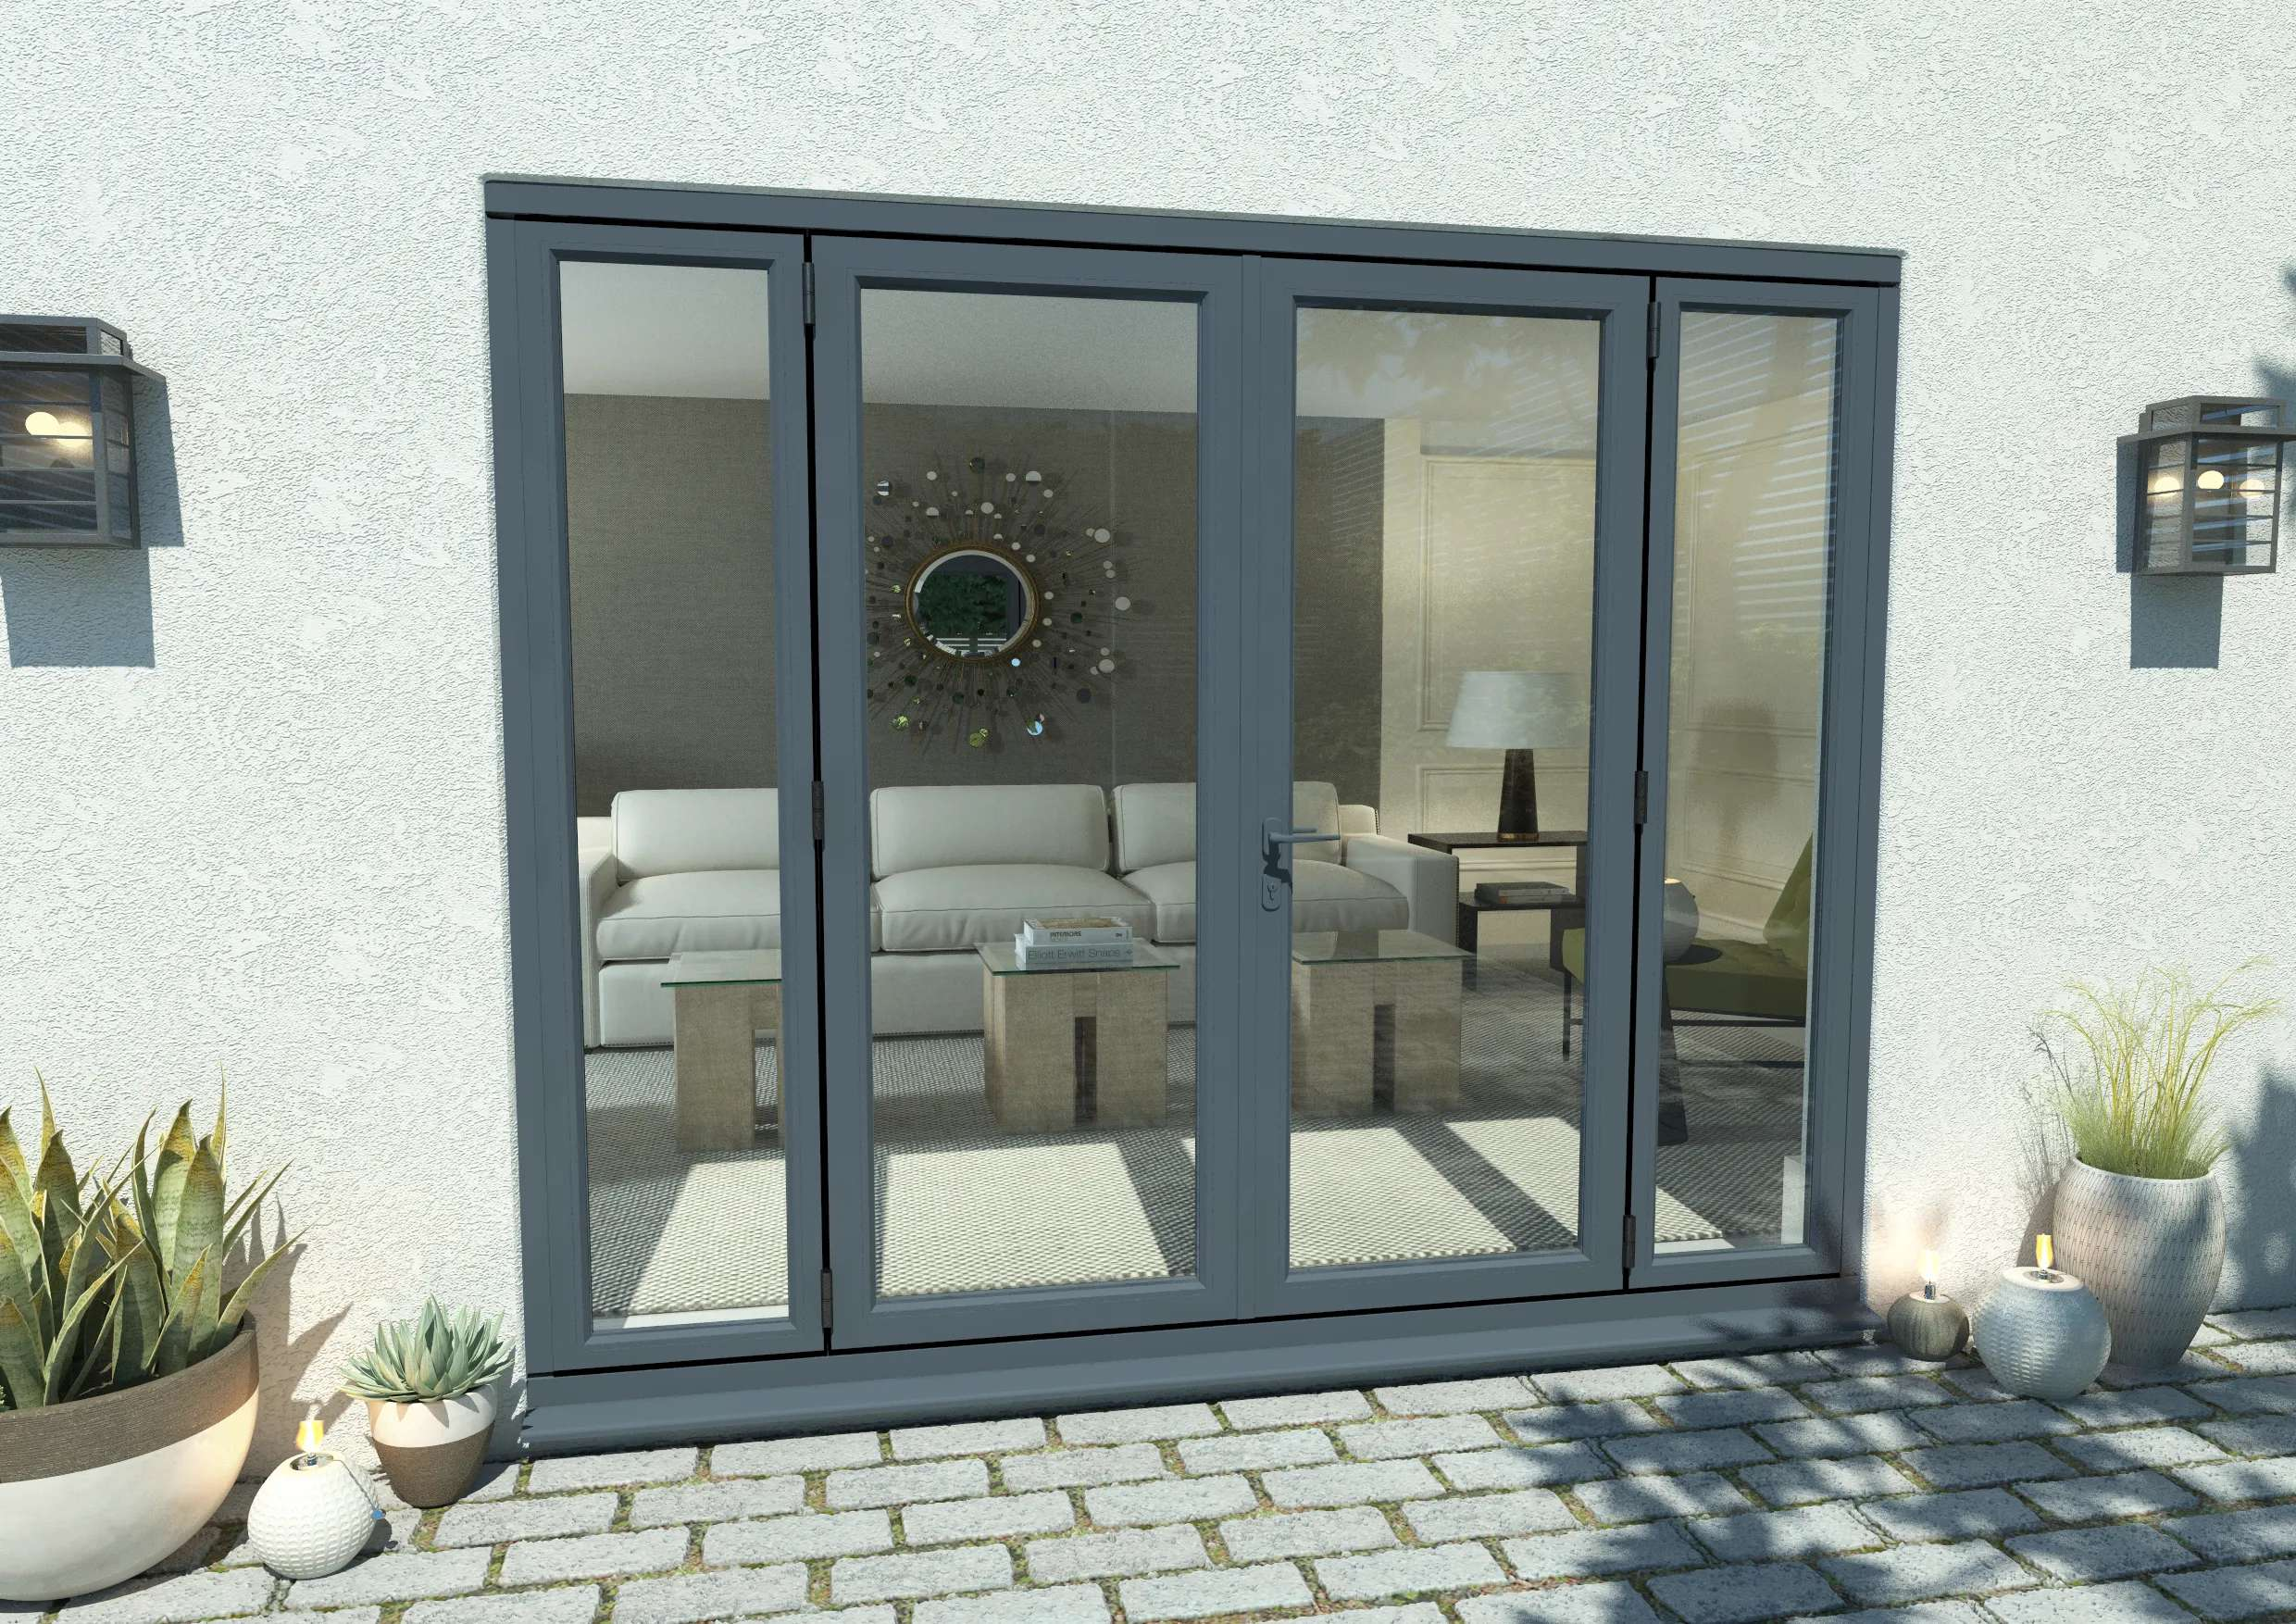 2400mm open out grey aluminium french doors 1500mm doors 2 x 450mm sidelights